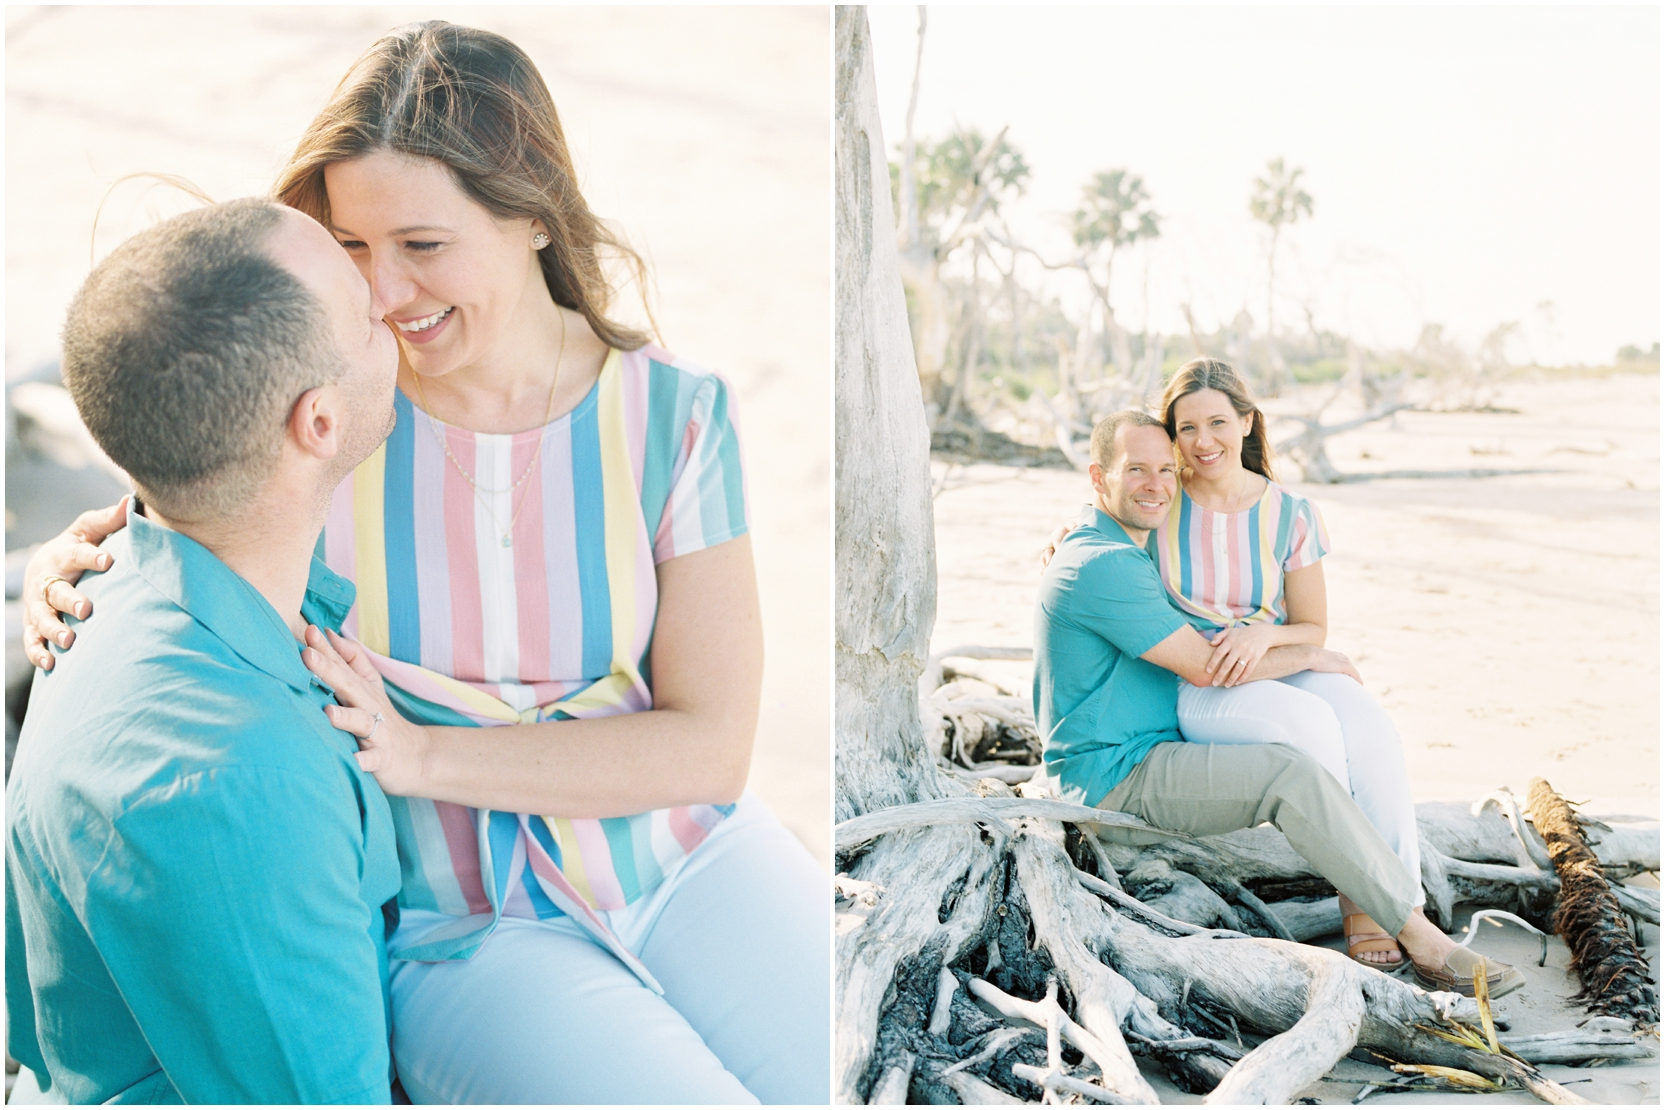 Lisa Silva Photography -Engagement Session at Big Talbot Island- Jacksonville and North East Florida Fine Art Film Photographer_0016.jpg